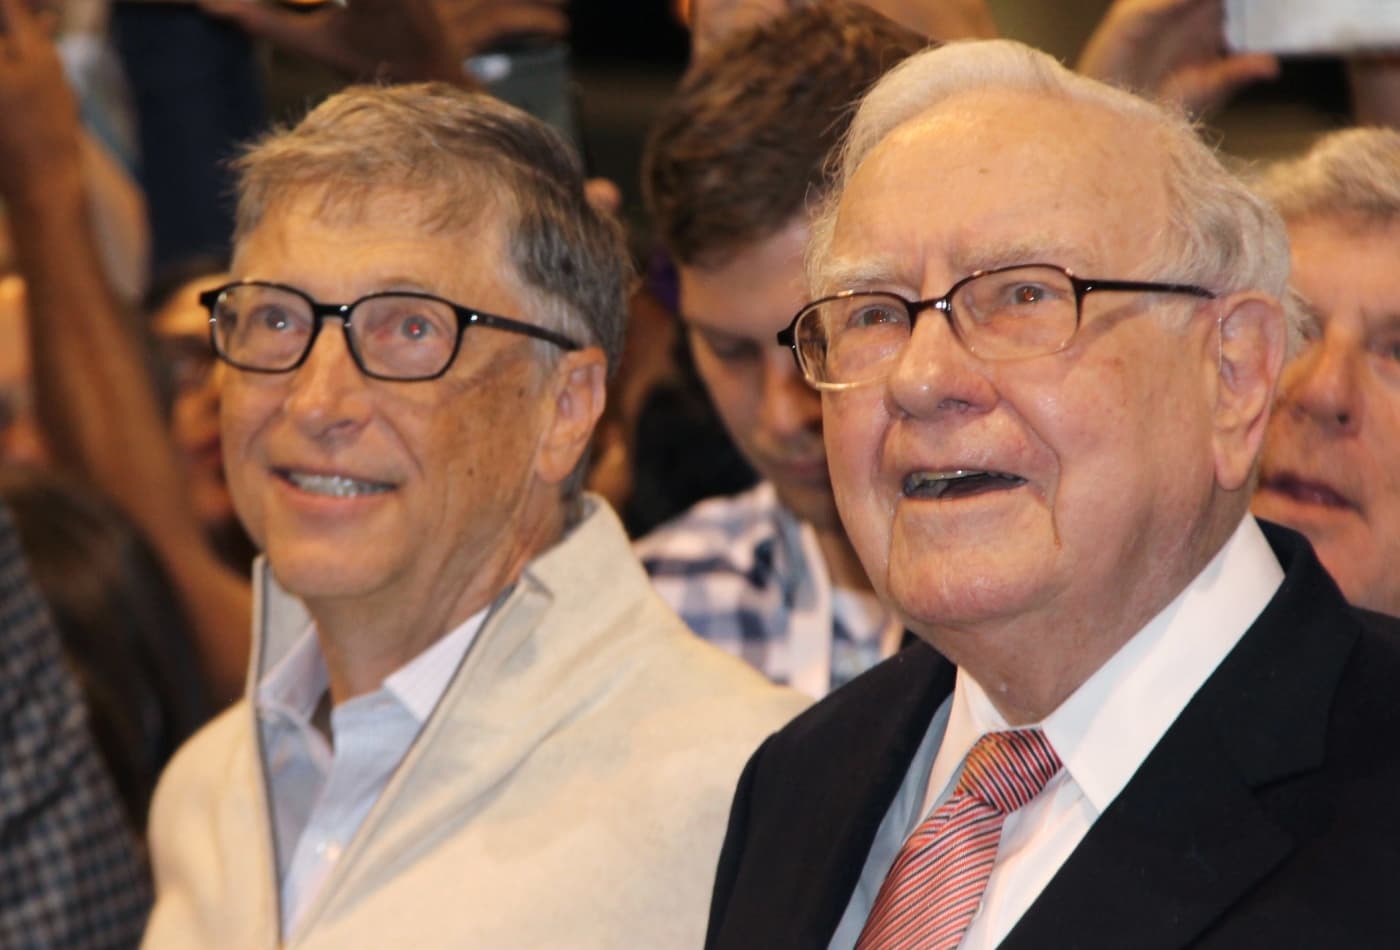 Warren Buffett: I've spoken with Bill Gates about the coronavirus outbreak